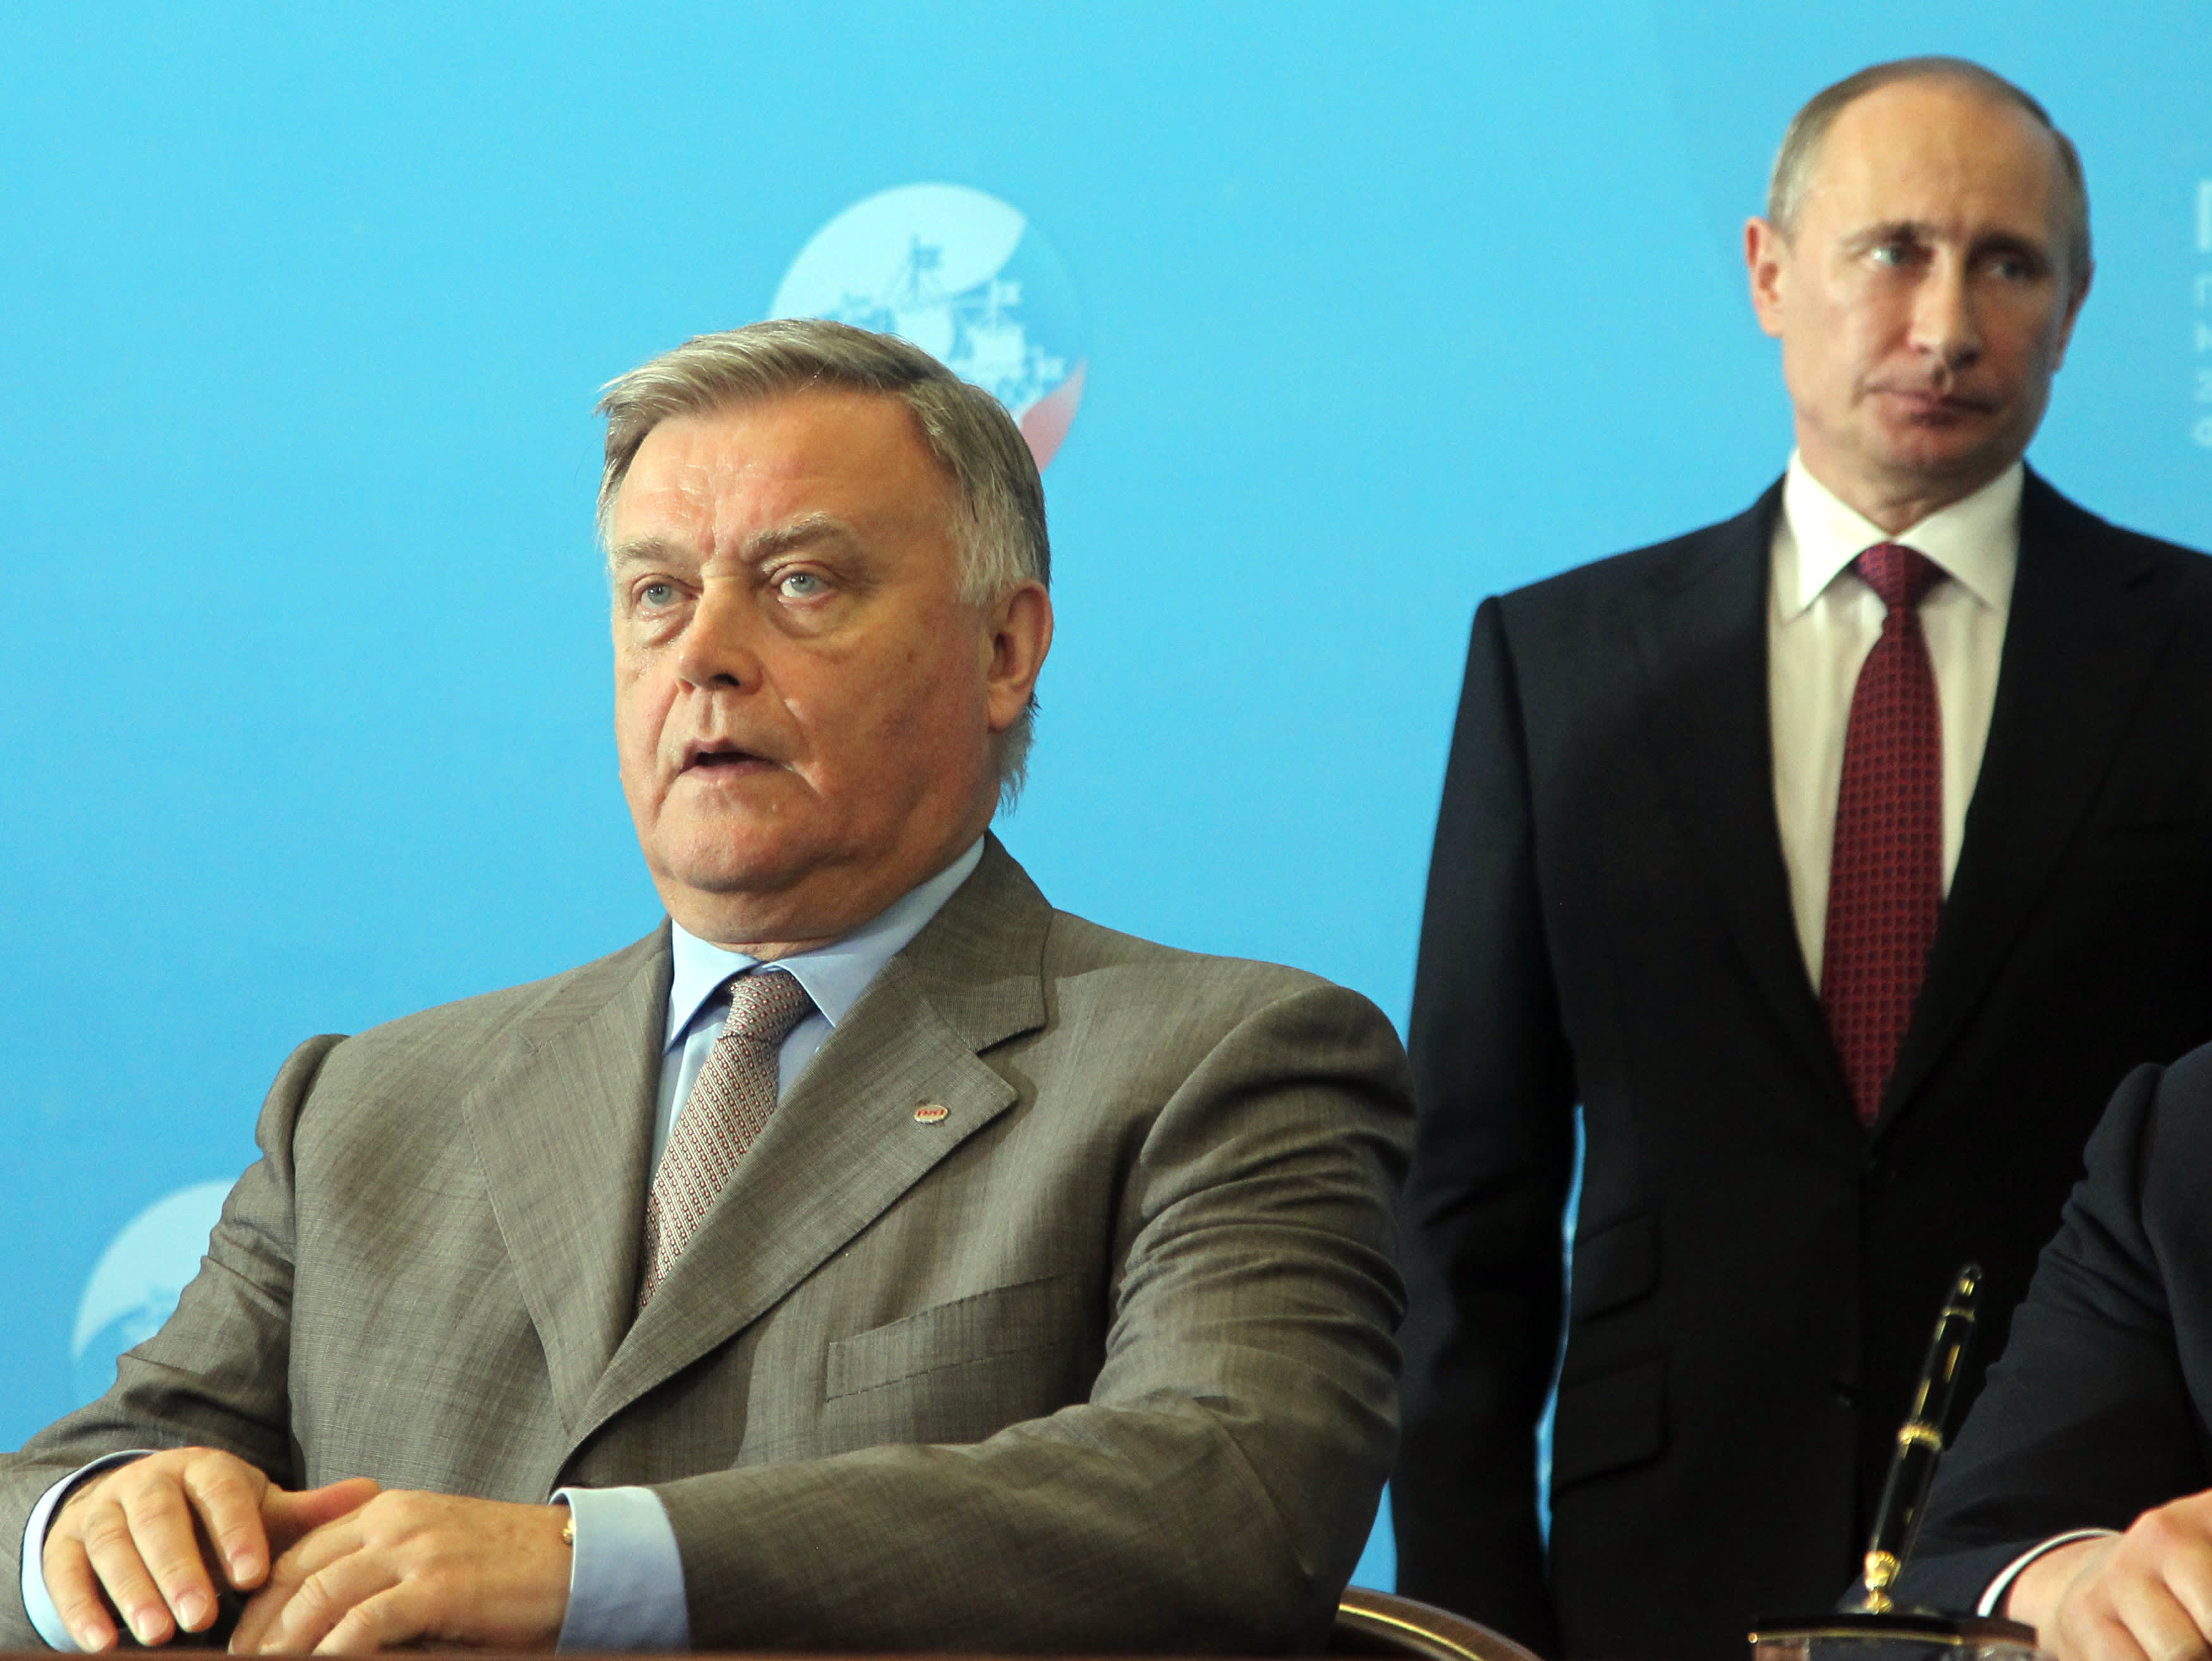 Vladimir Yakunin (left) and Russian President Vladimir Putin at the Saint Petersburg Economic Forum in 2013